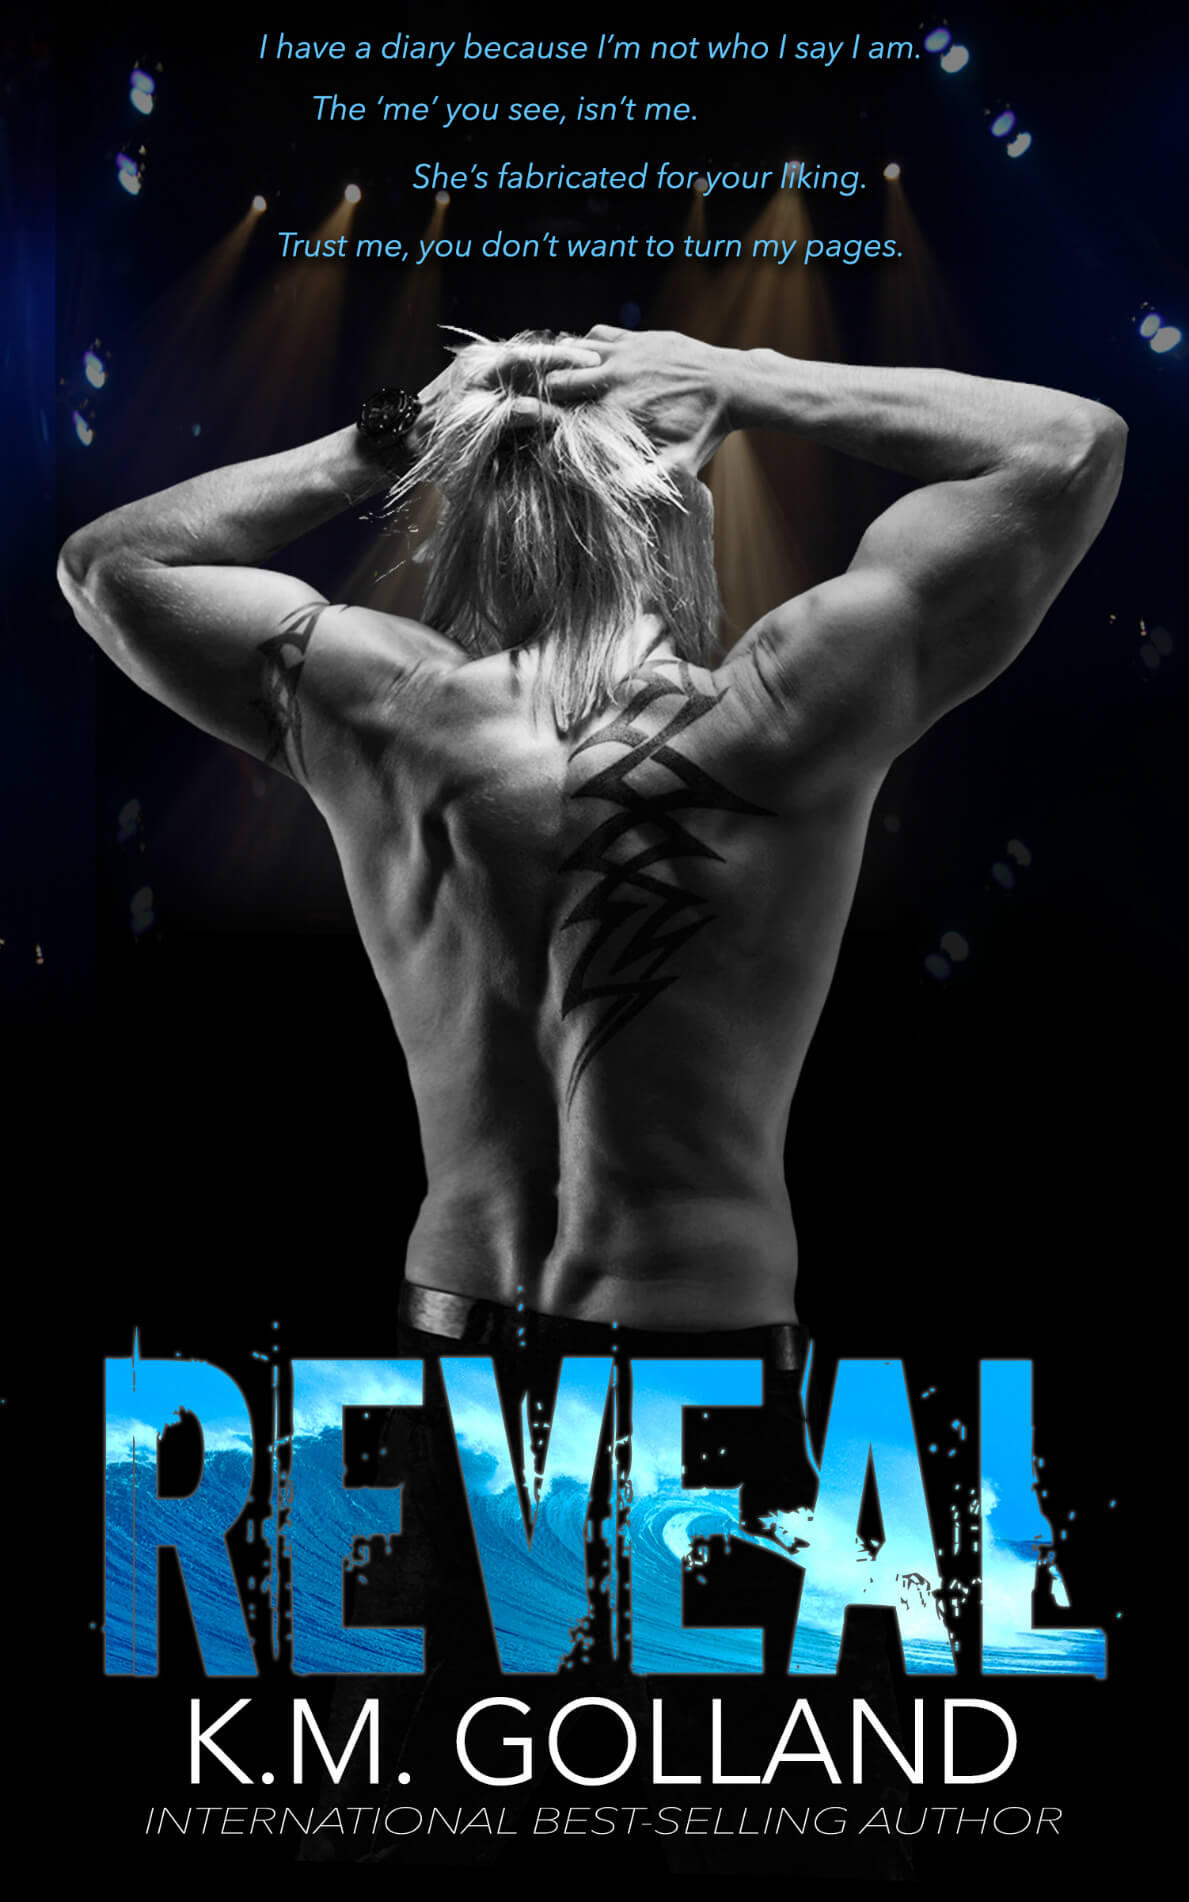 Reveal by K.M. Golland